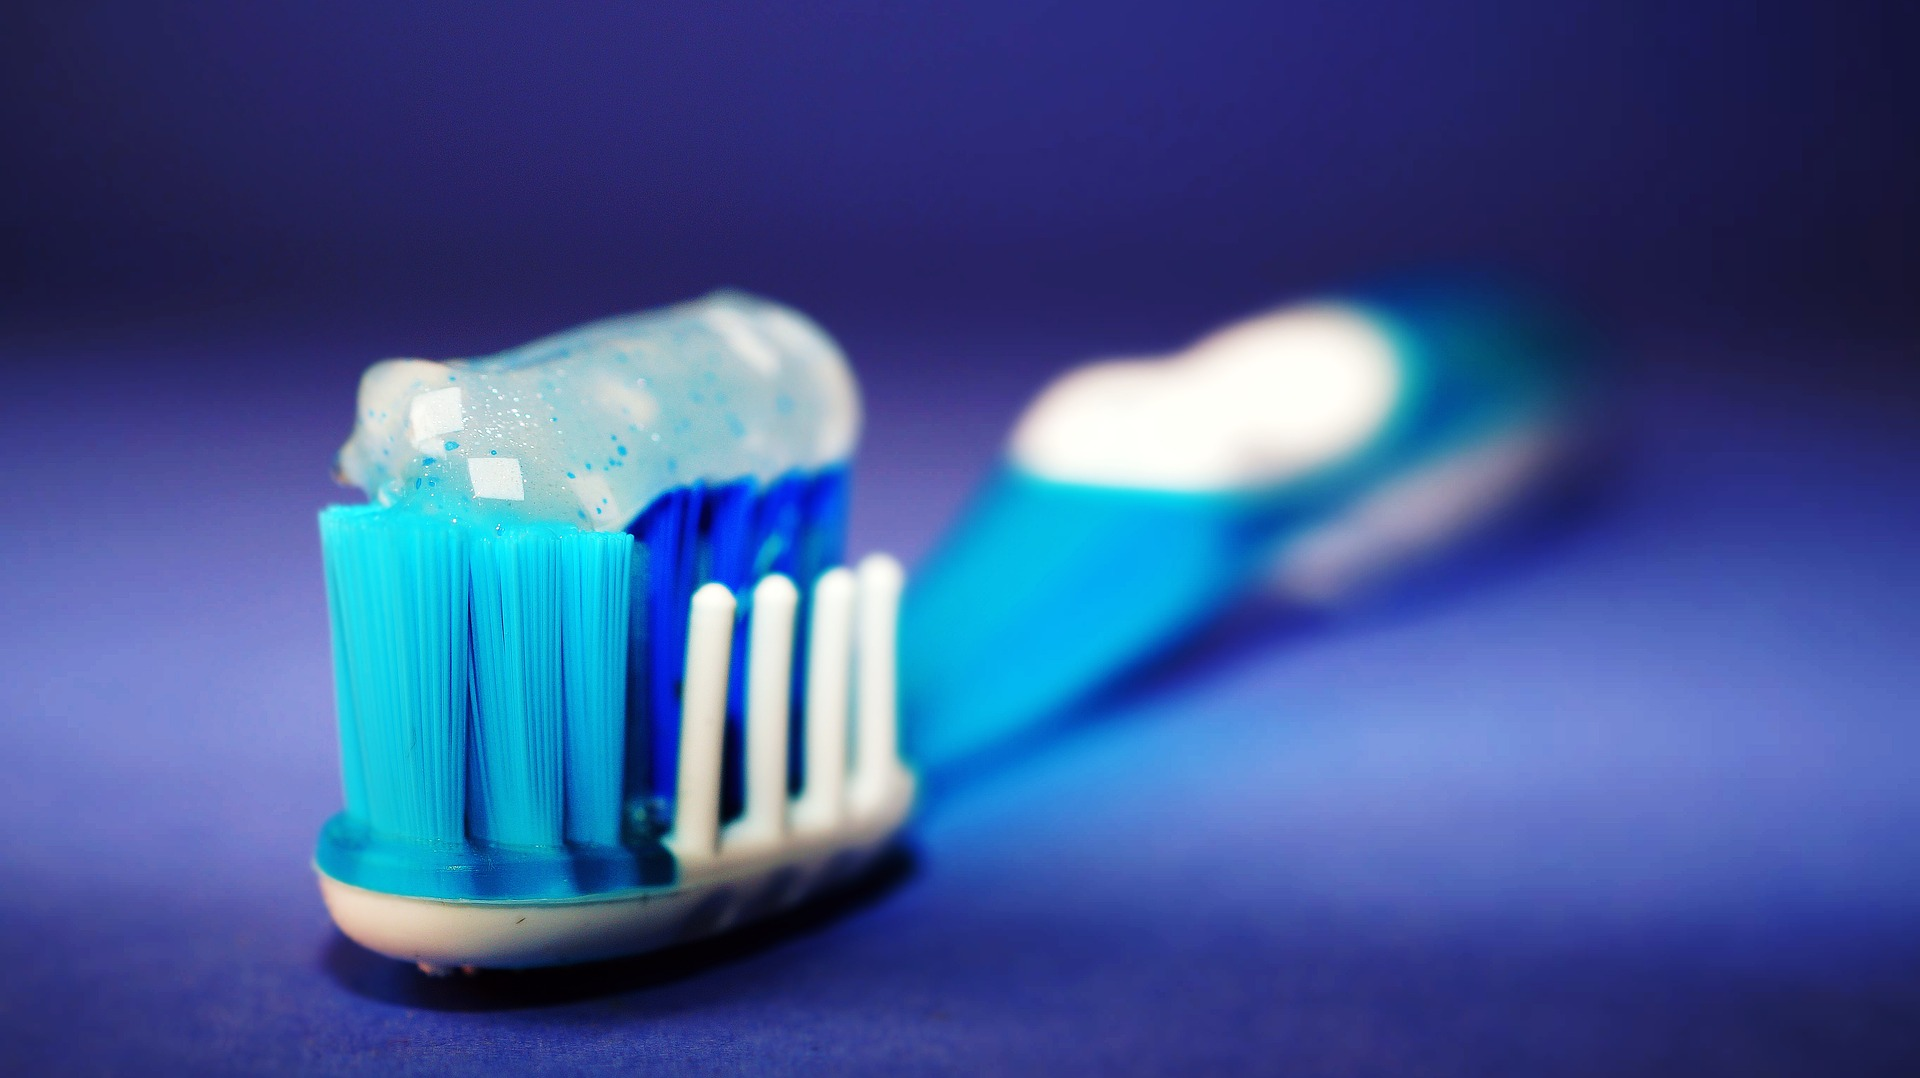 toothbrush care - toothbrush with toothpaste on it